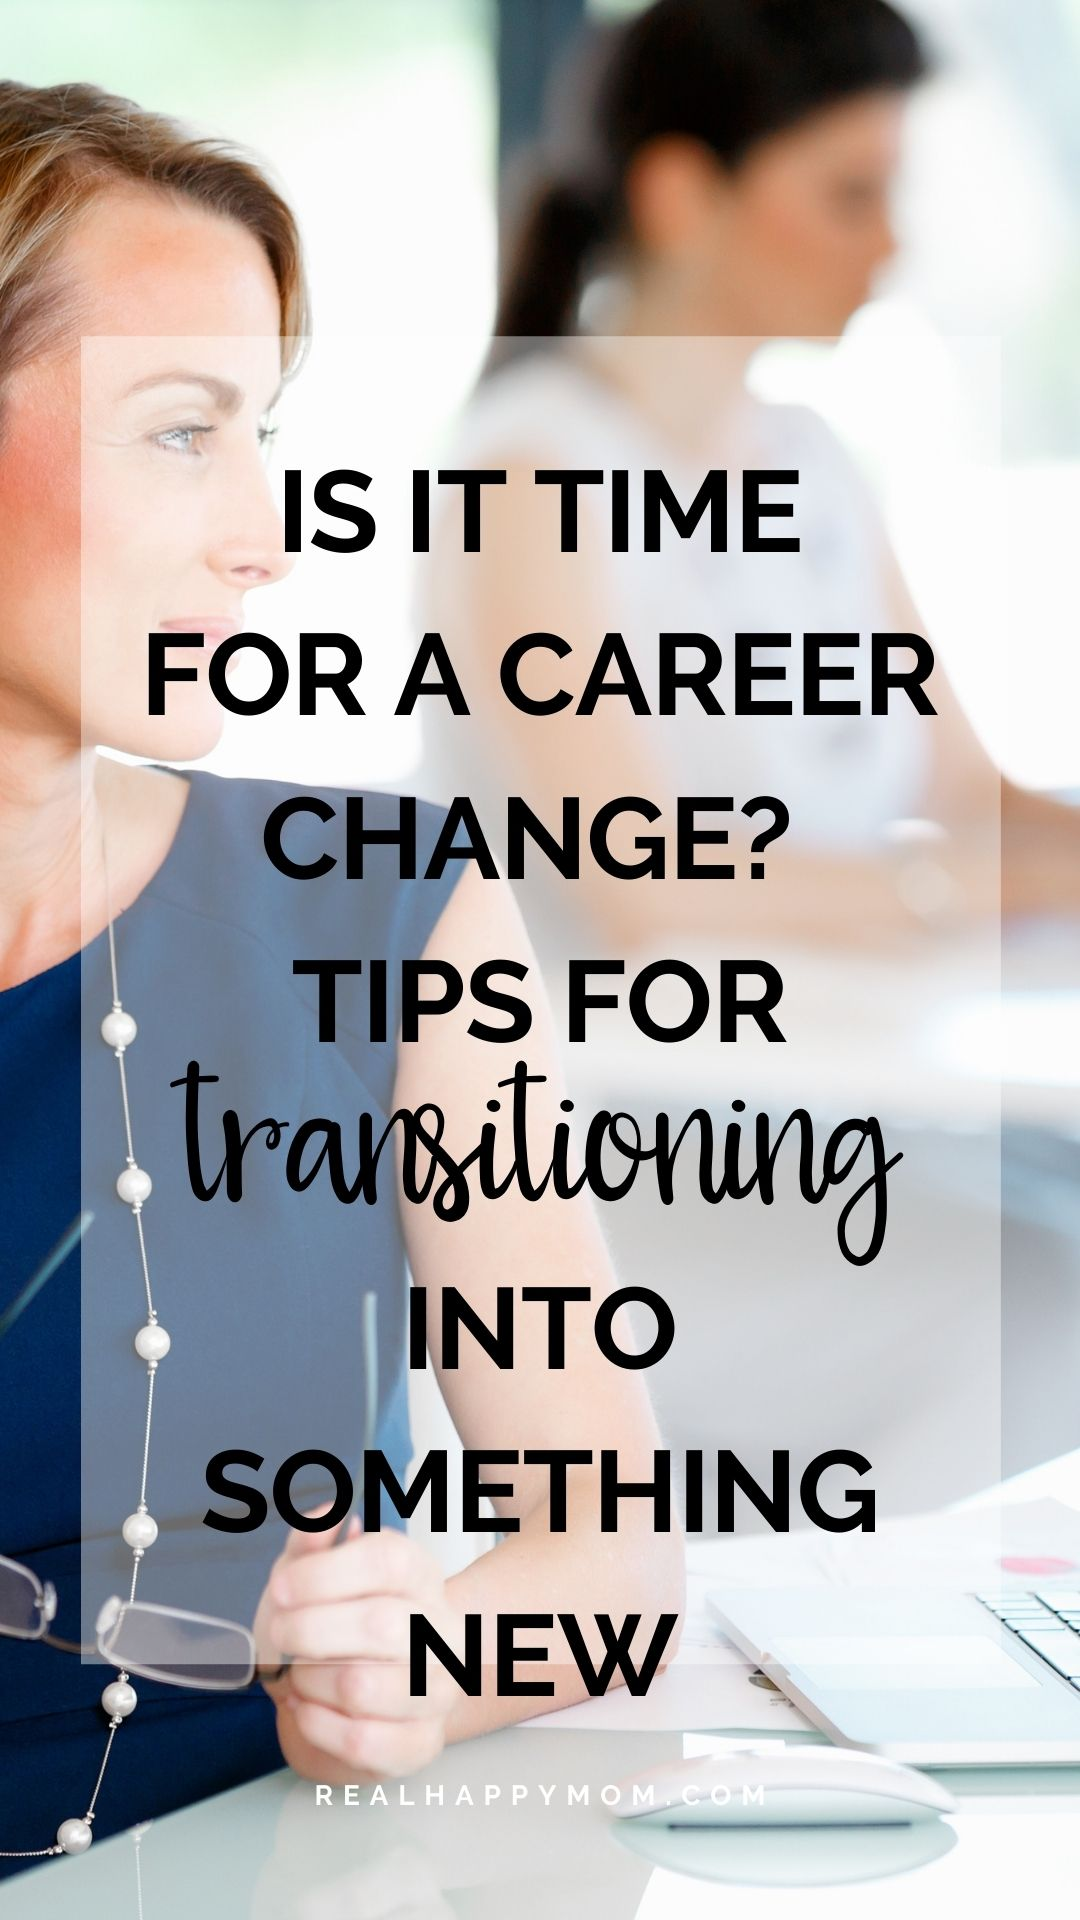 Is it time for a Career Change? Tips for Transitioning Into Something New